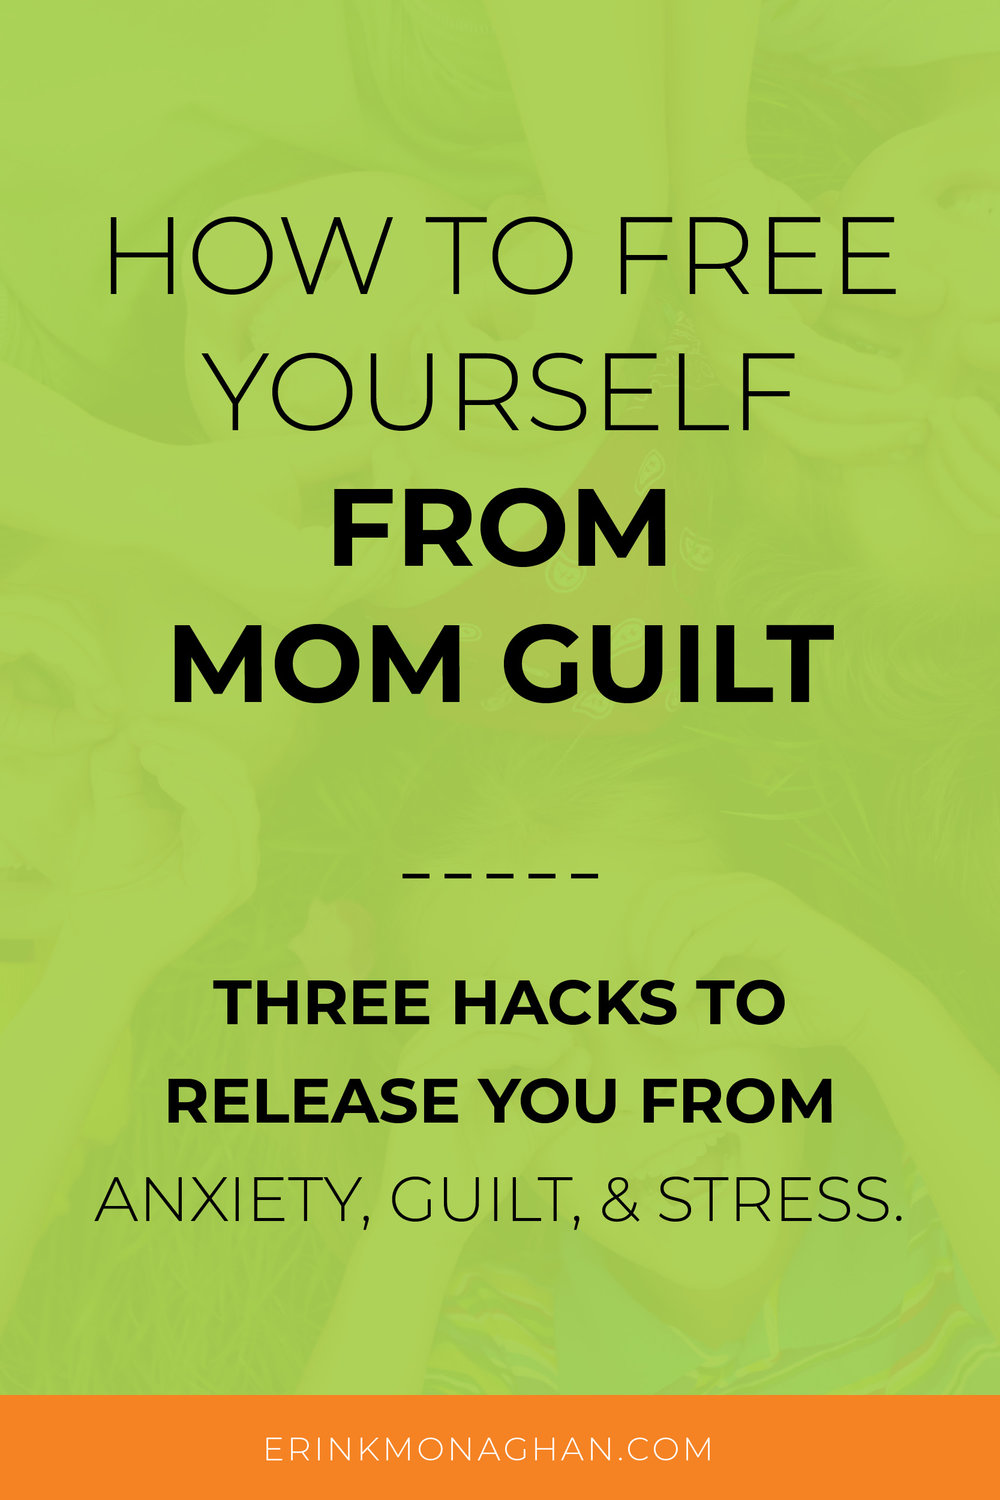 Free Yourself From Mom Guilt.jpg